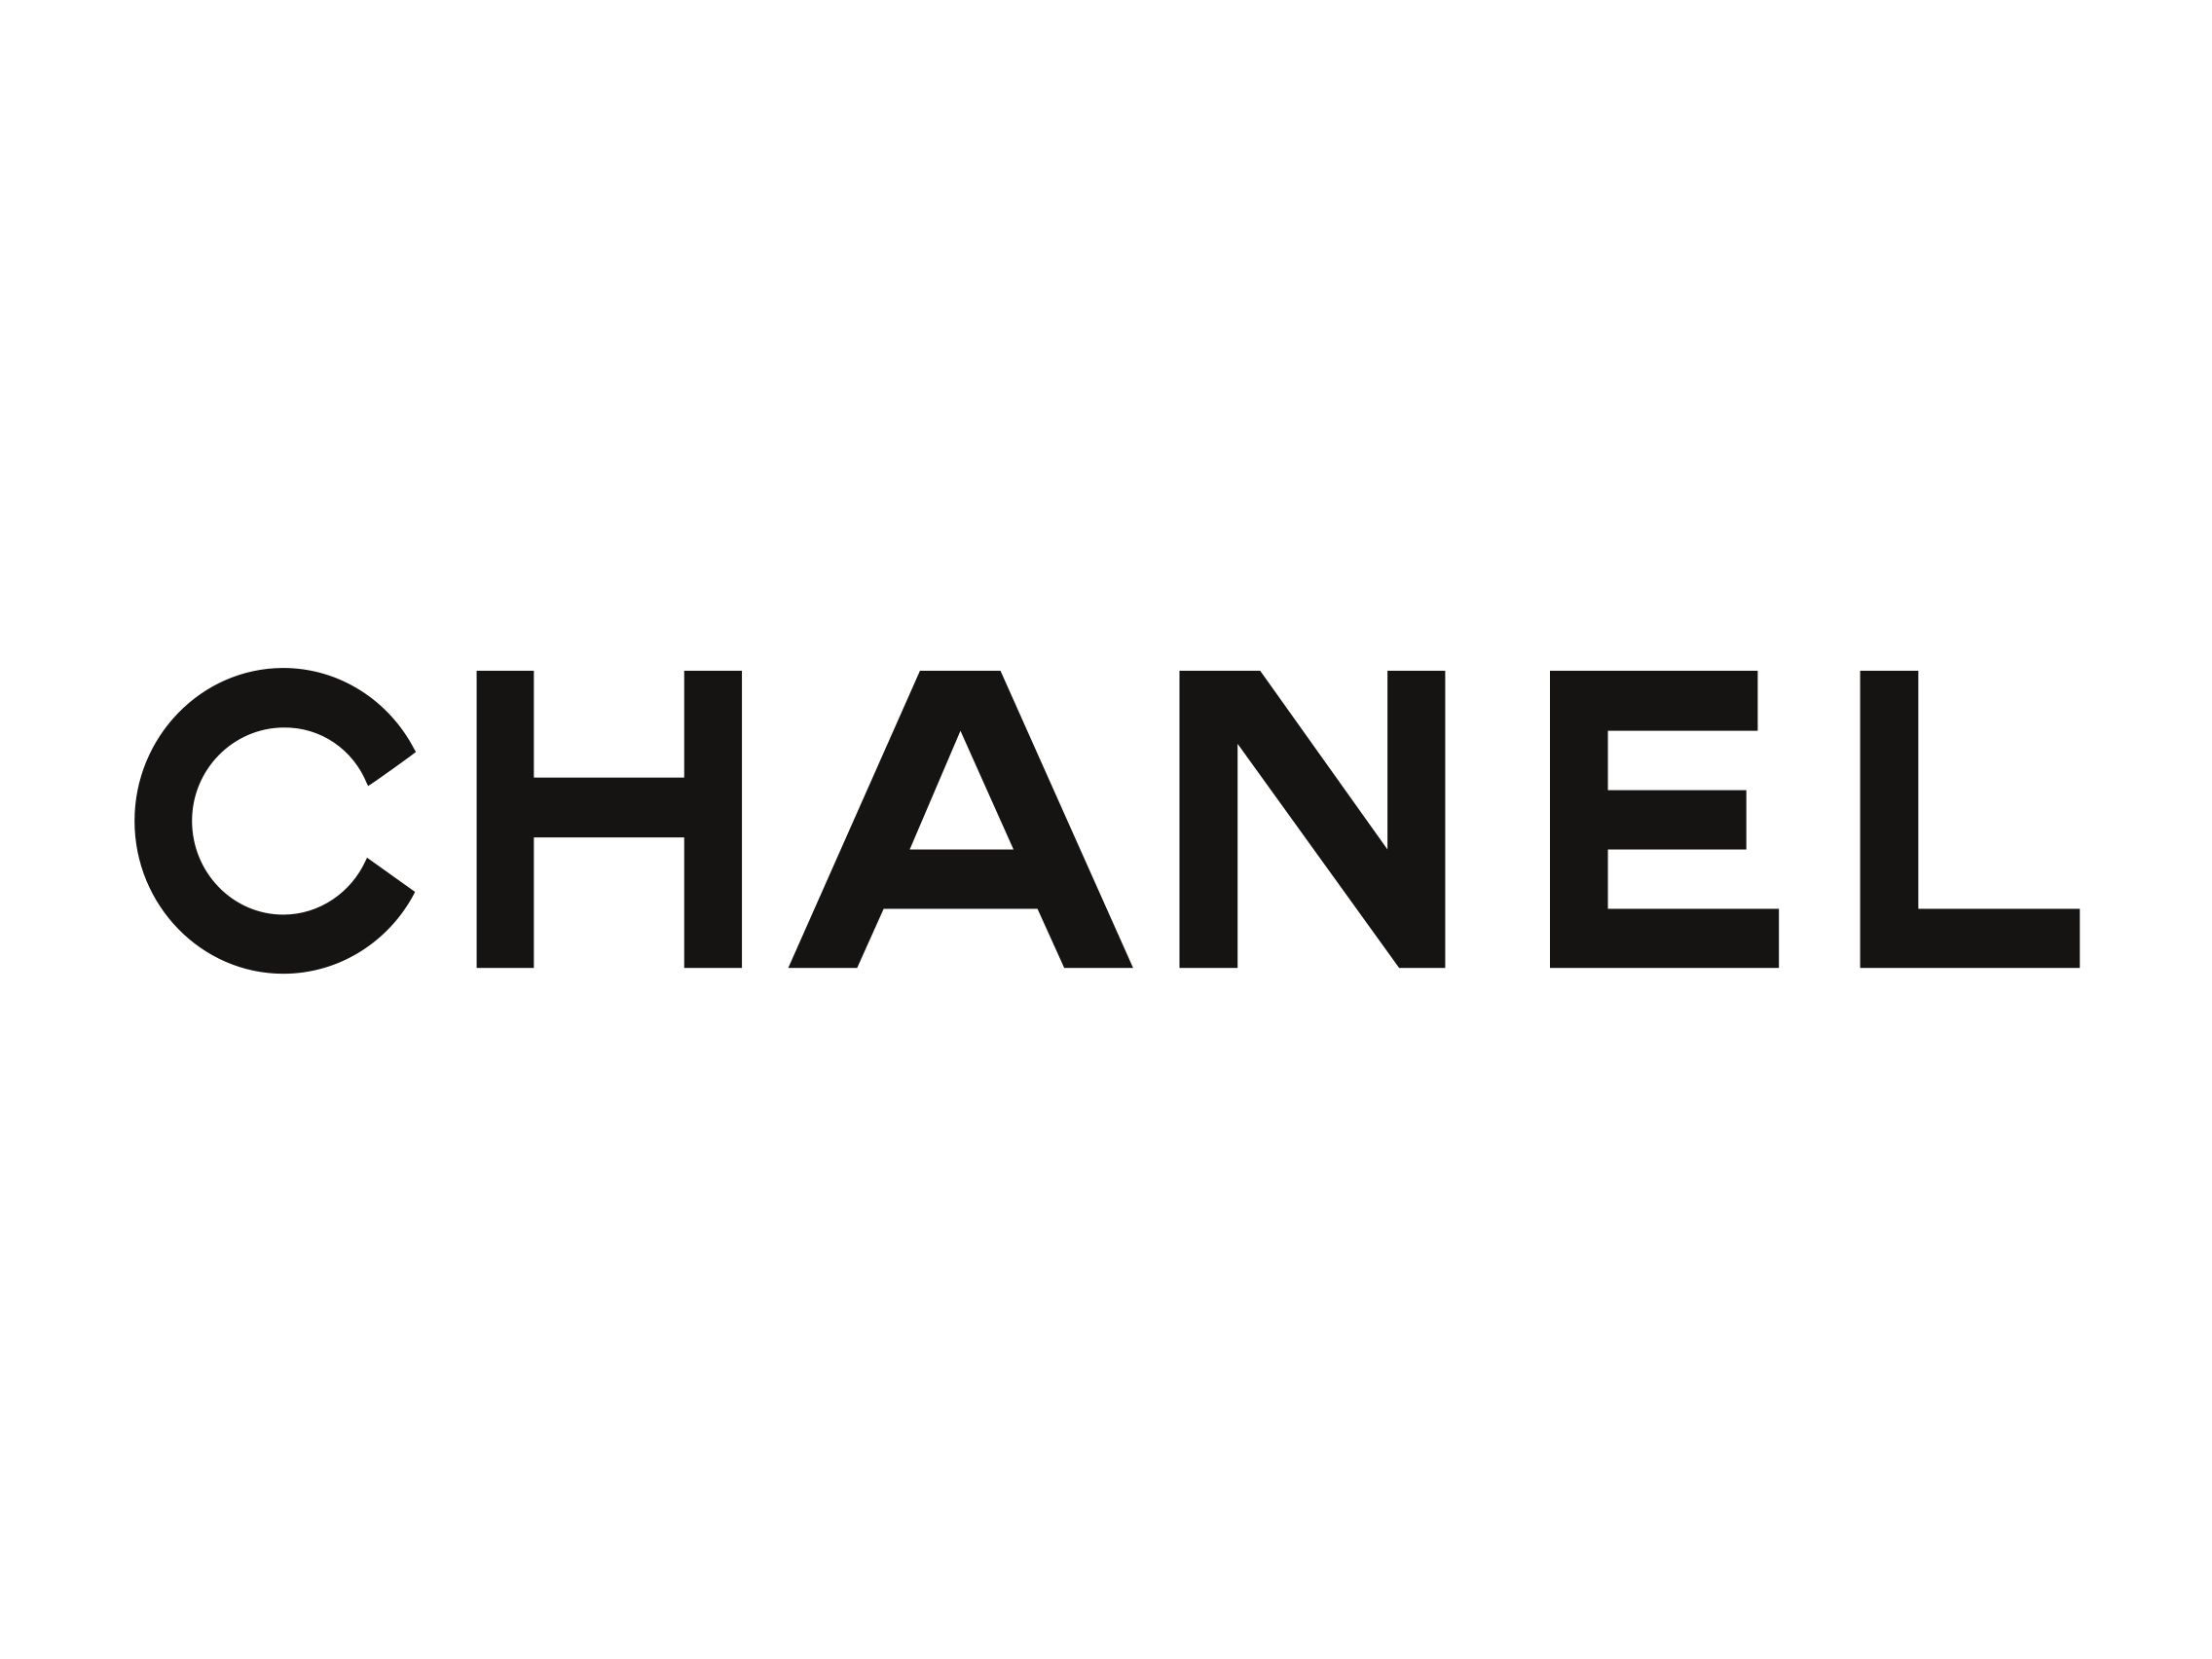 香奈儿_chanel logo wordmark - logok